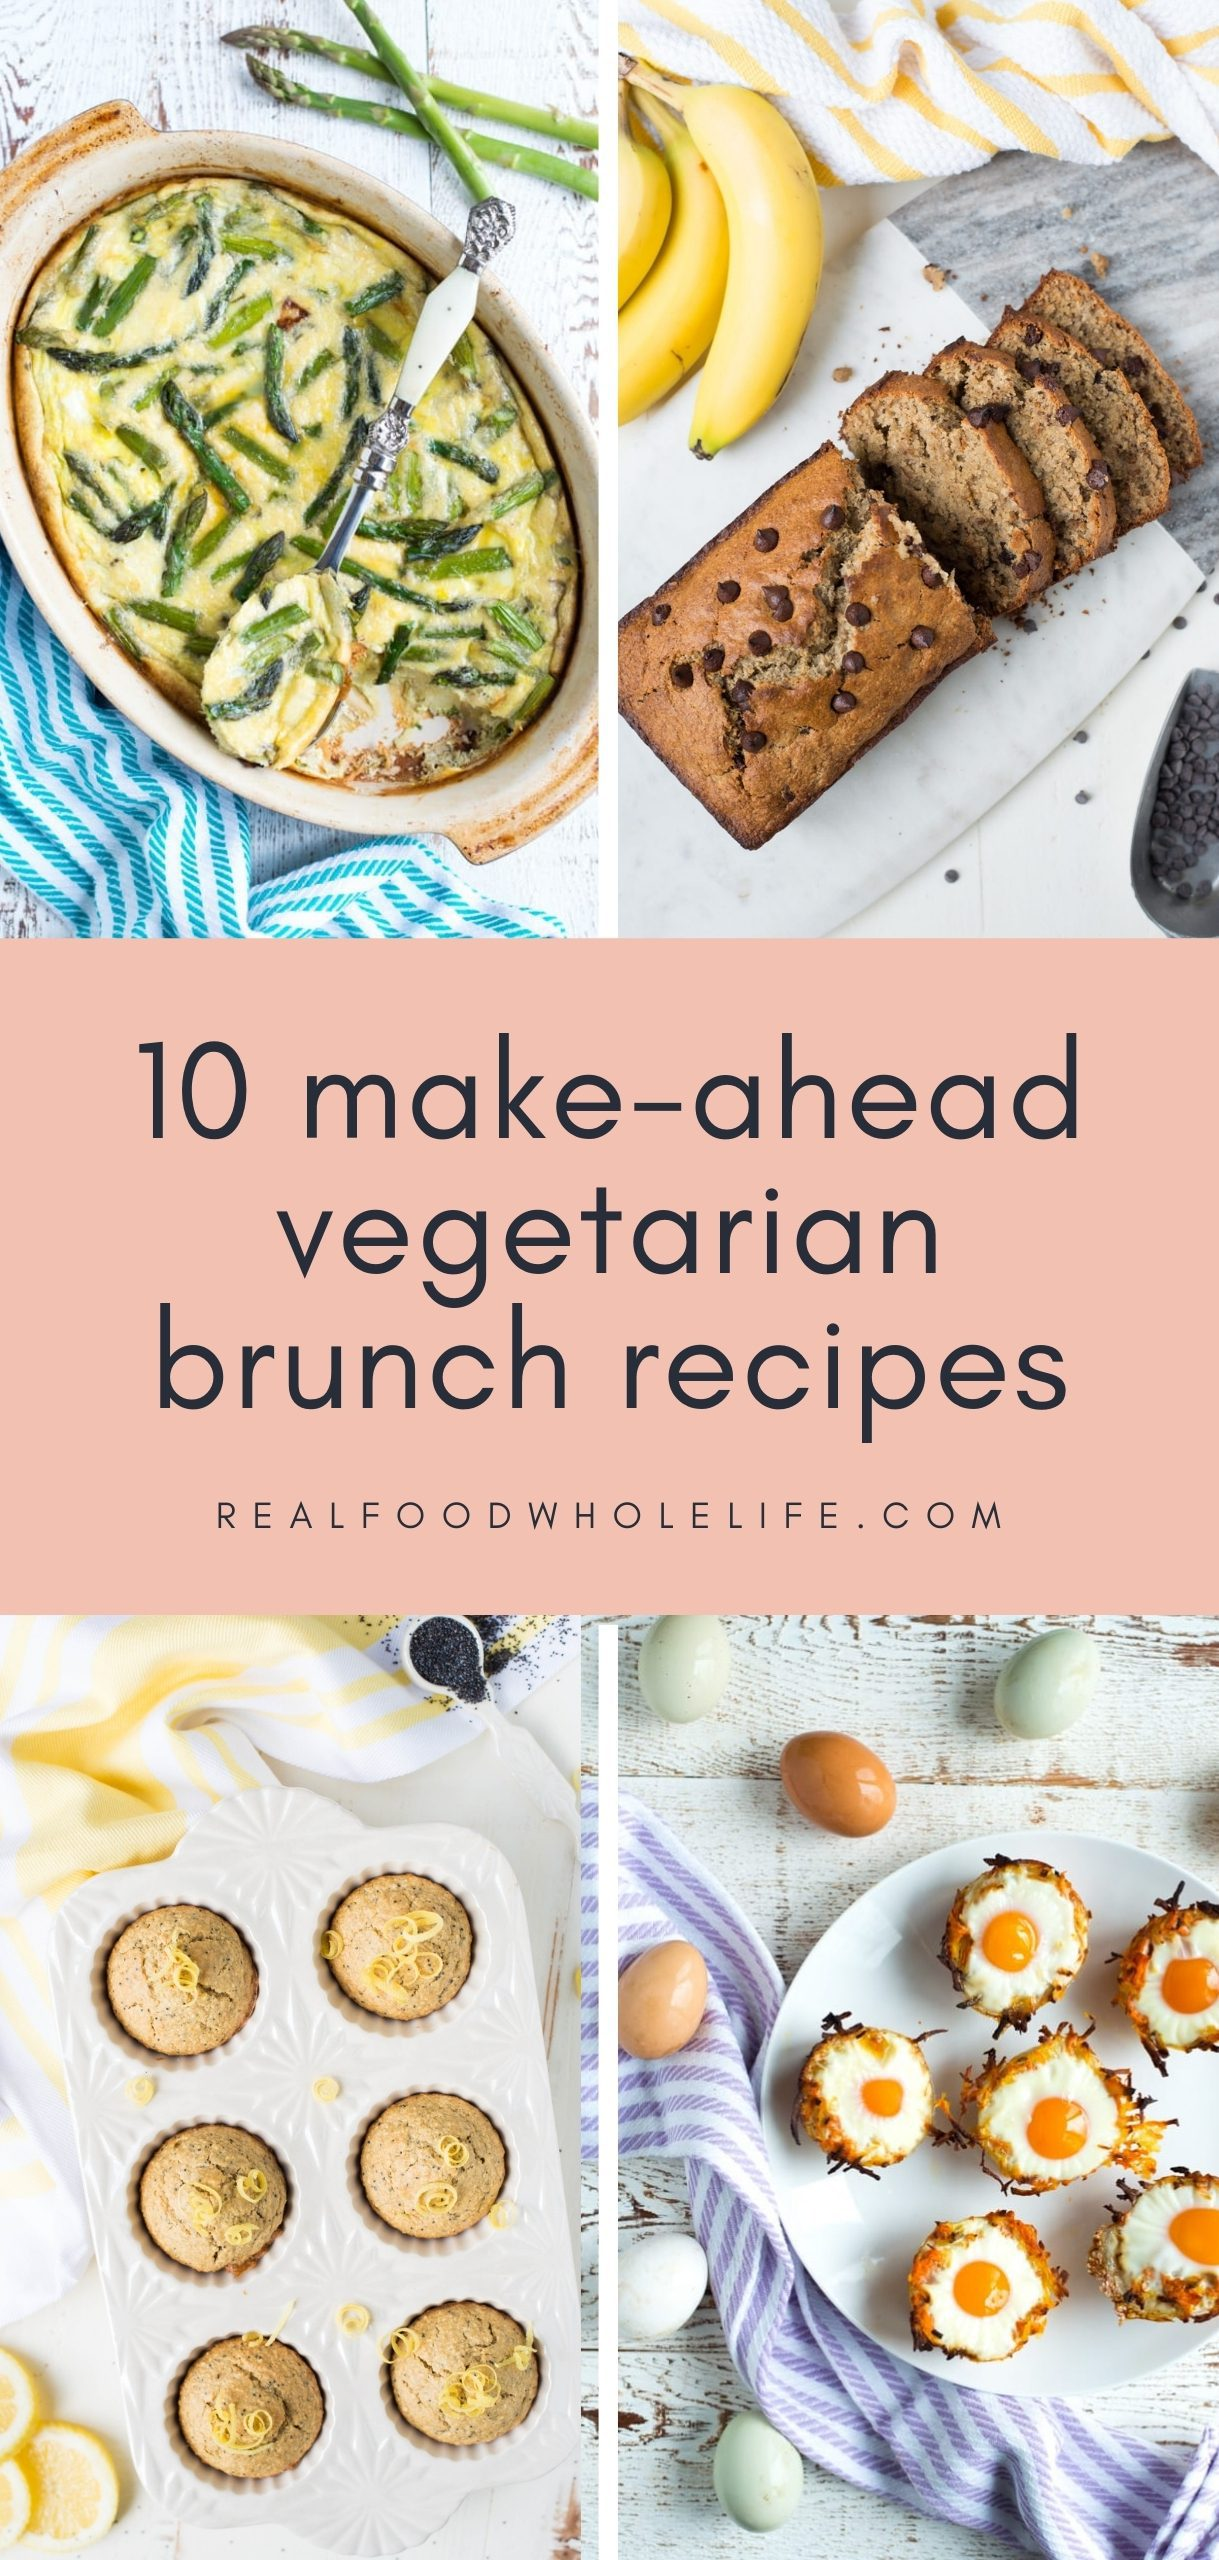 egg bake, banana bread, poppy seed muffins, and egg nests with pink background and black text